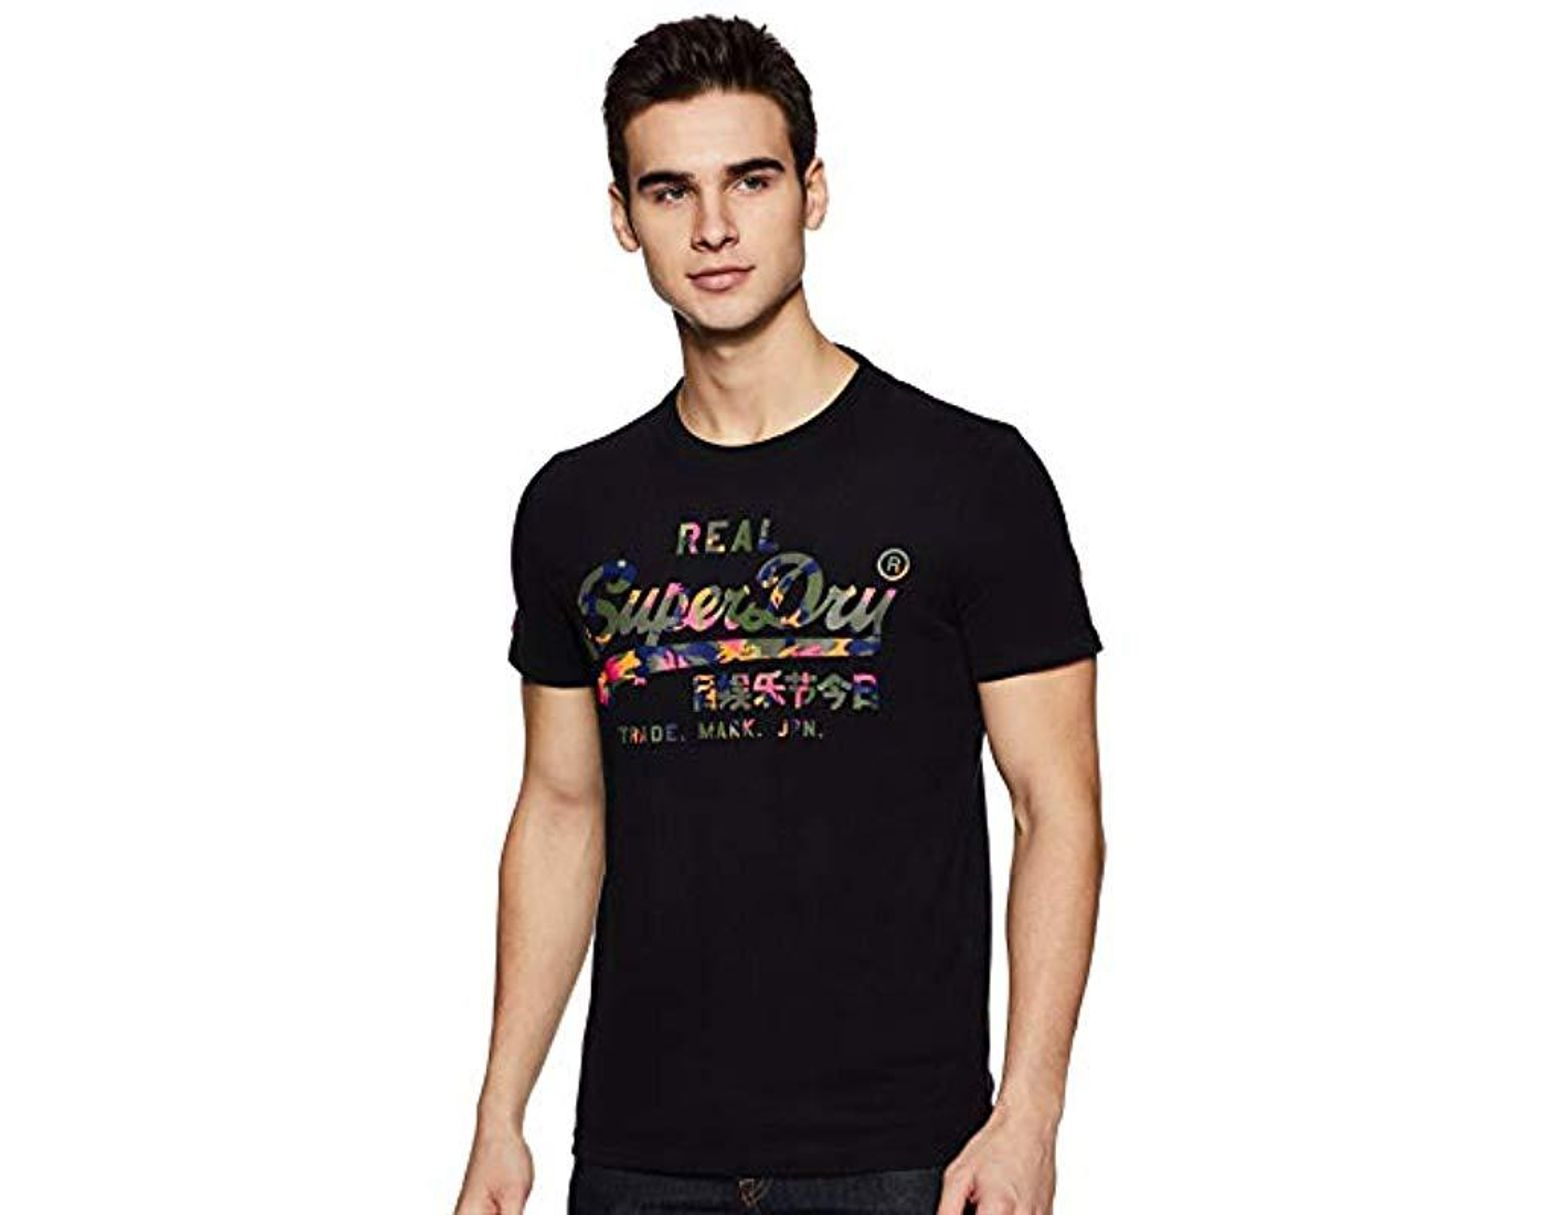 fd83f52eeaab5 Superdry Vintage Logo Layered Camo T-shirt in Black for Men - Save ...